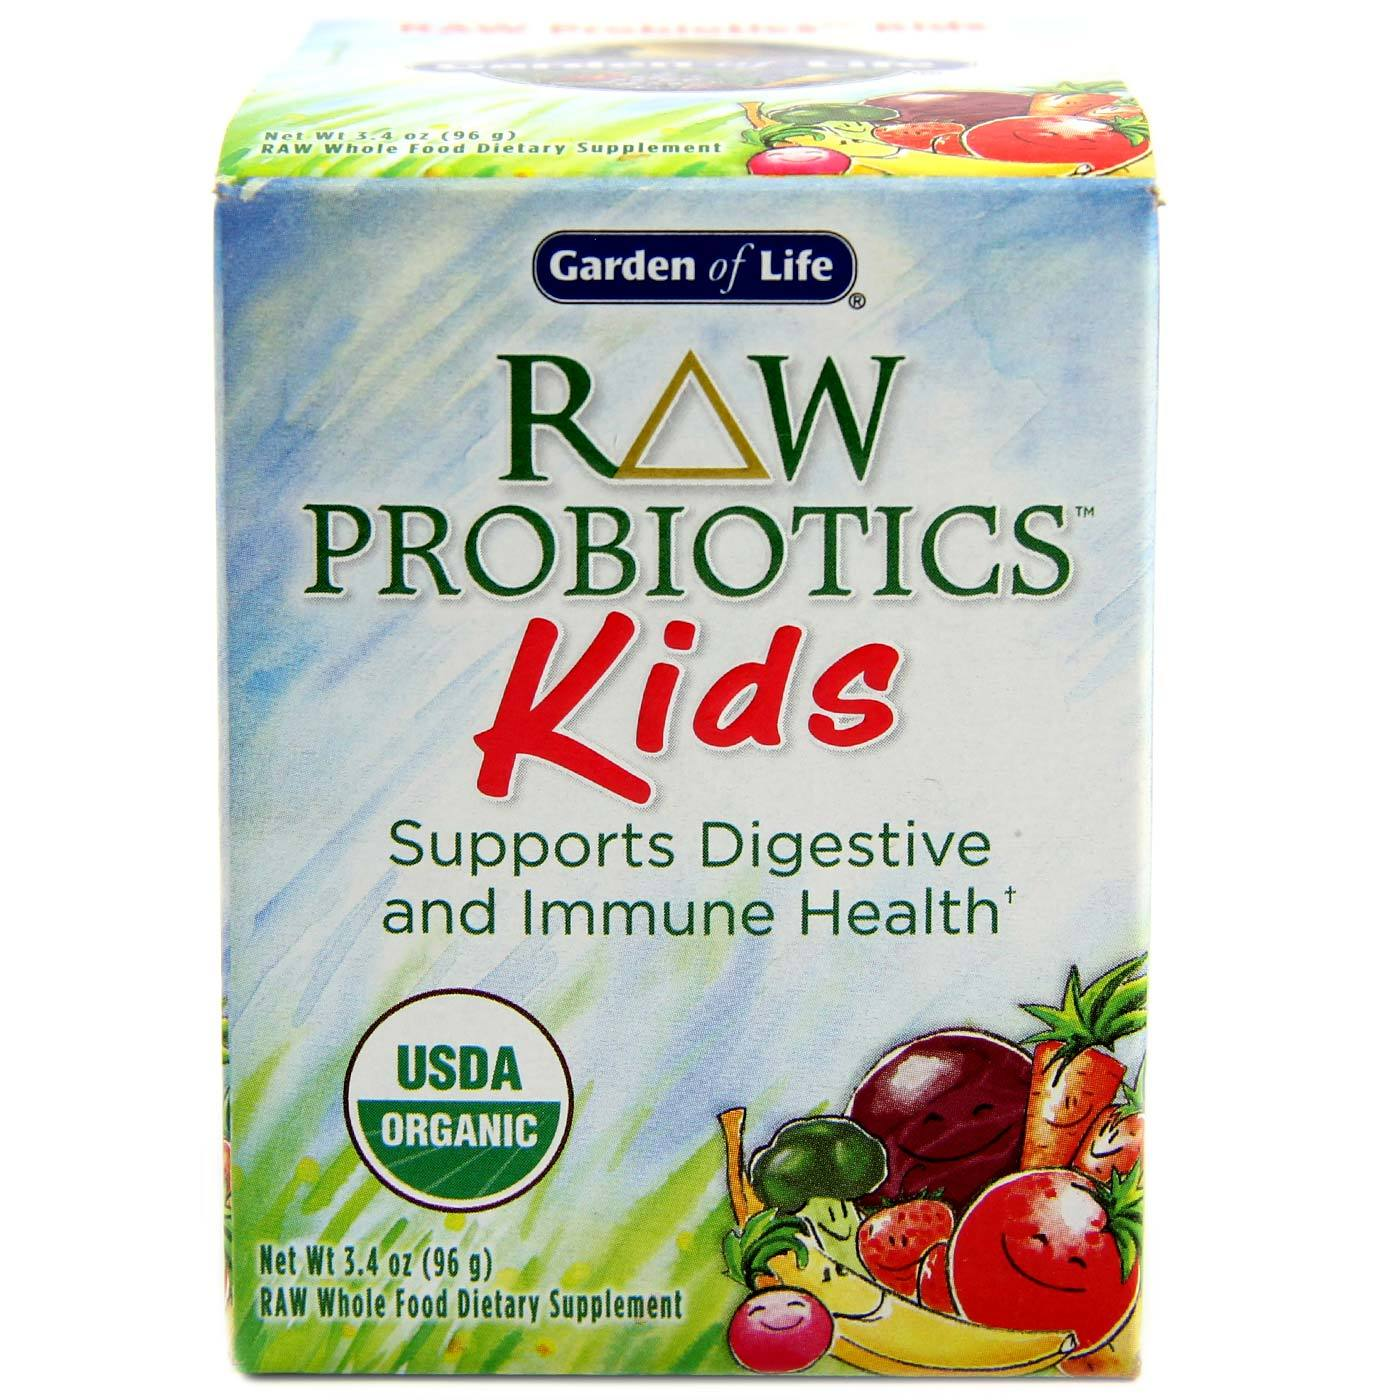 garden of life raw probiotics kids 3 4 oz evitamins australia